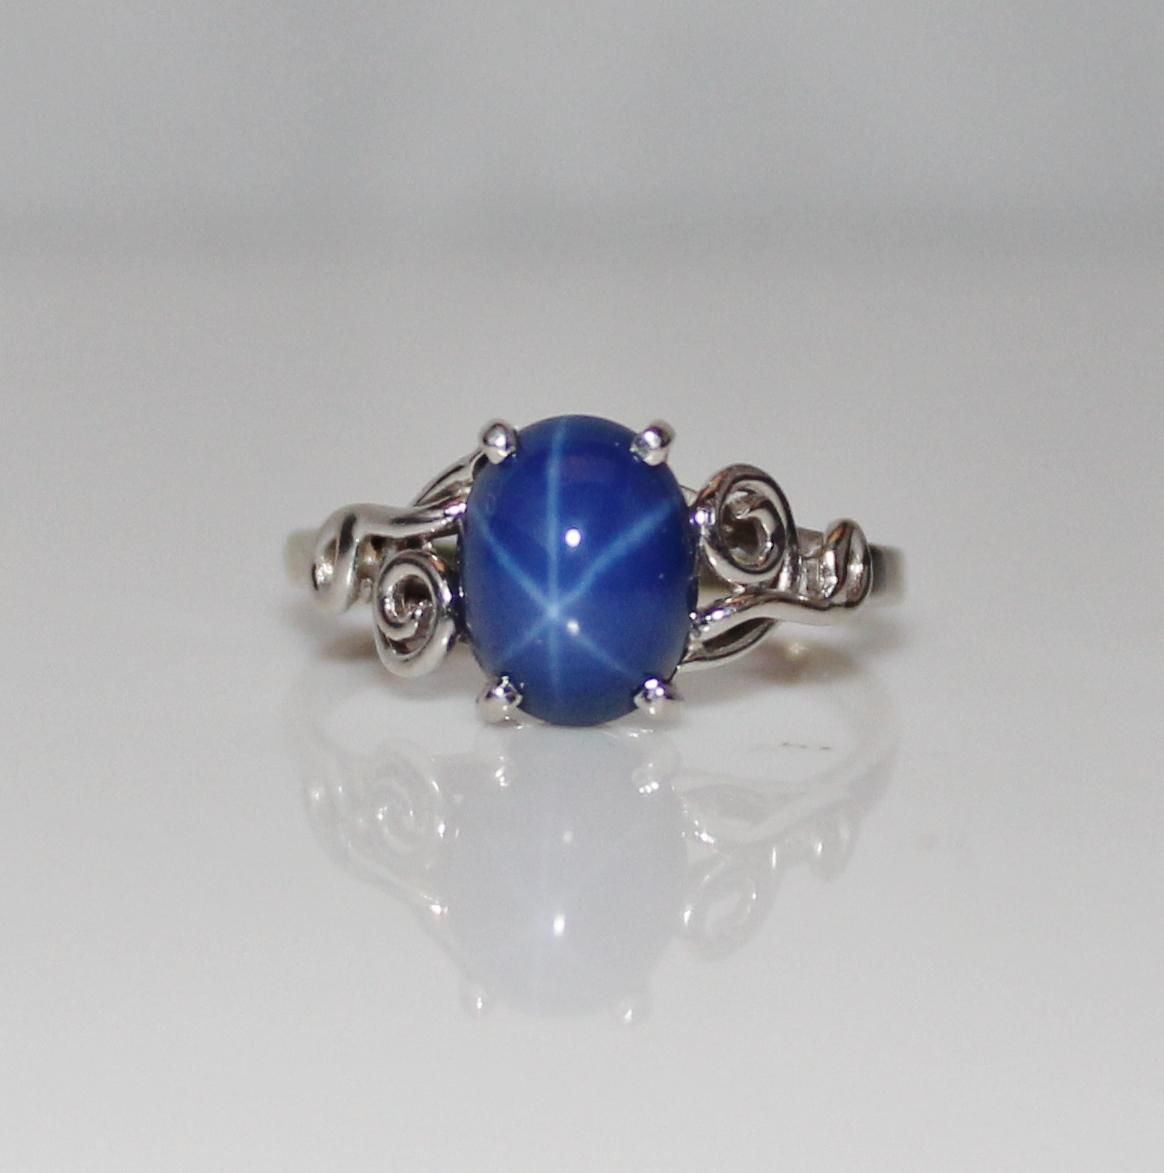 nature ken halo haley ring band products oval ss rings split engagement dana gray design curved blue sapphire inspired wave unique